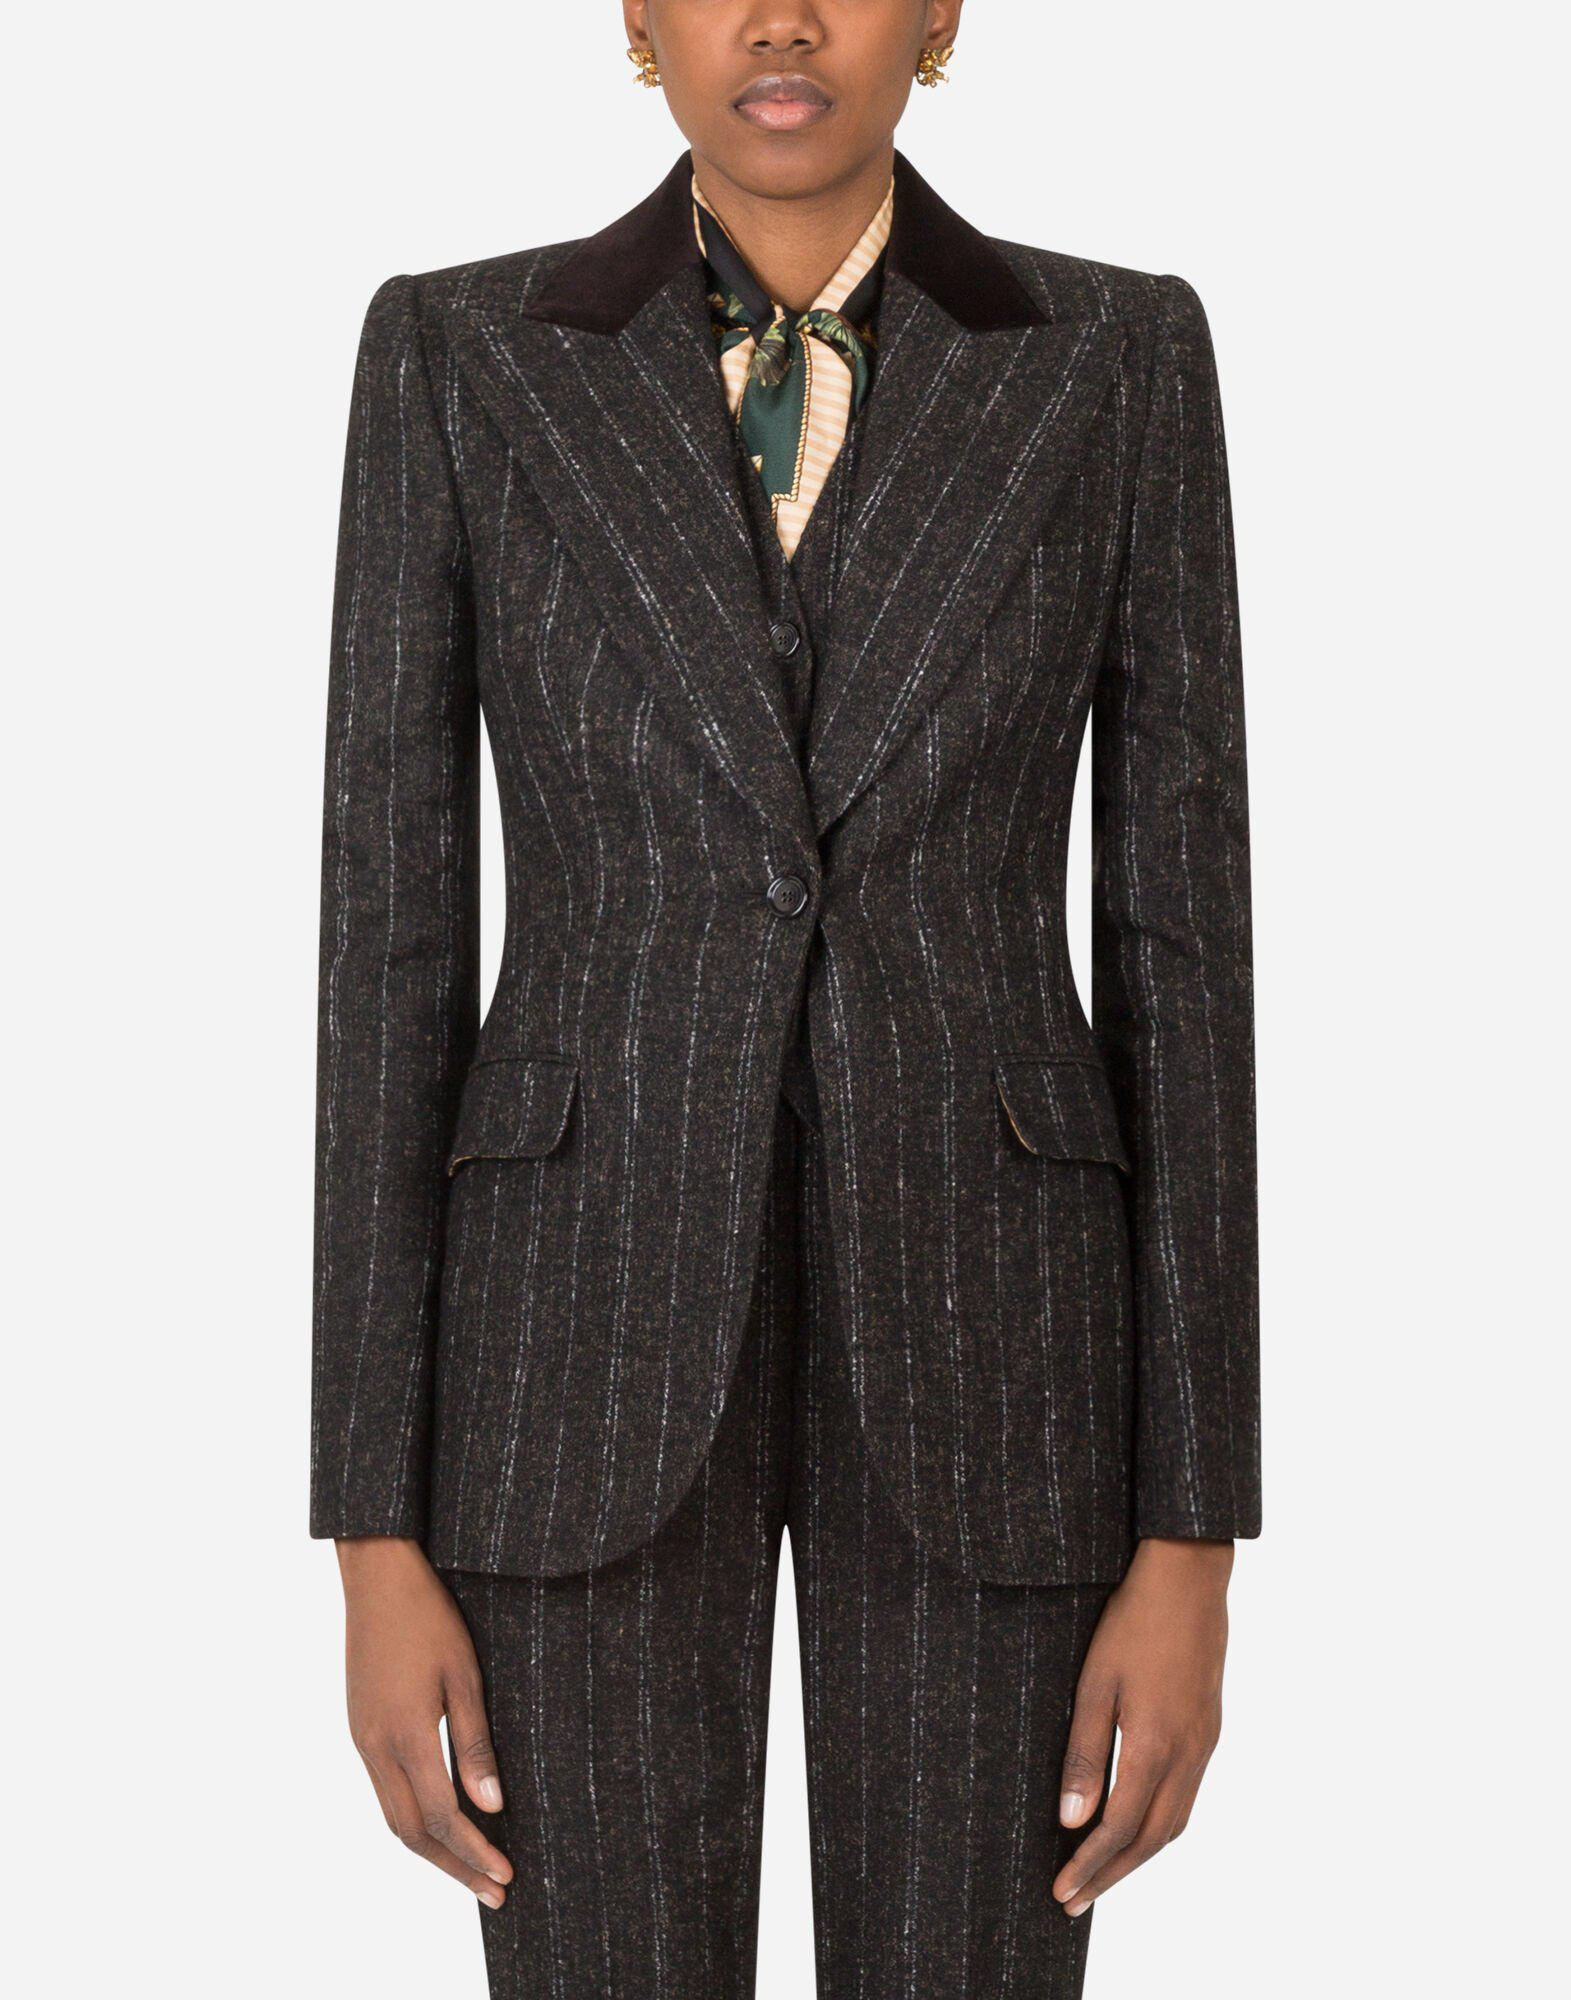 Single-breasted jacket in pinstripe wool with velvet collar